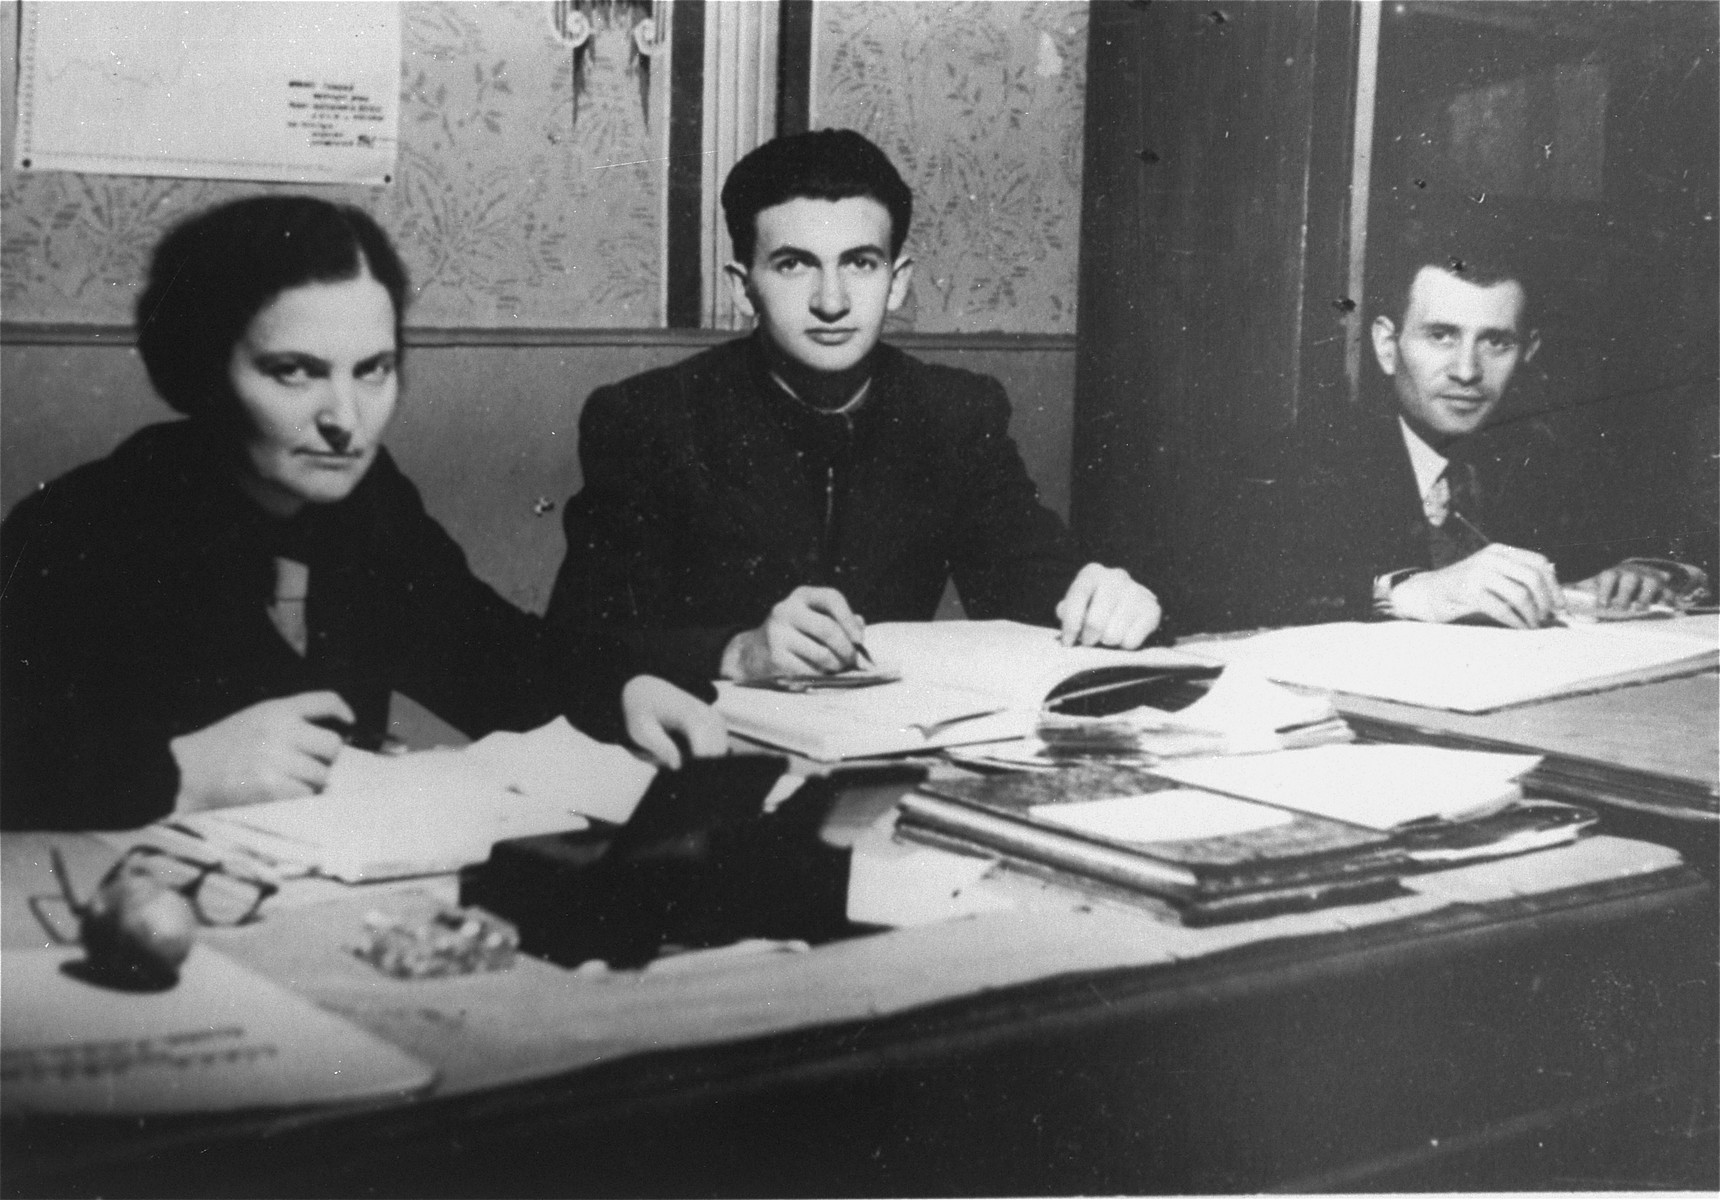 Three members of the administrative staff of the Kielce ghetto Judenrat (Jewish Council) at work in their office.  This photo was one the images included in an official album prepared by the Judenrat of the Kielce ghetto in 1942.